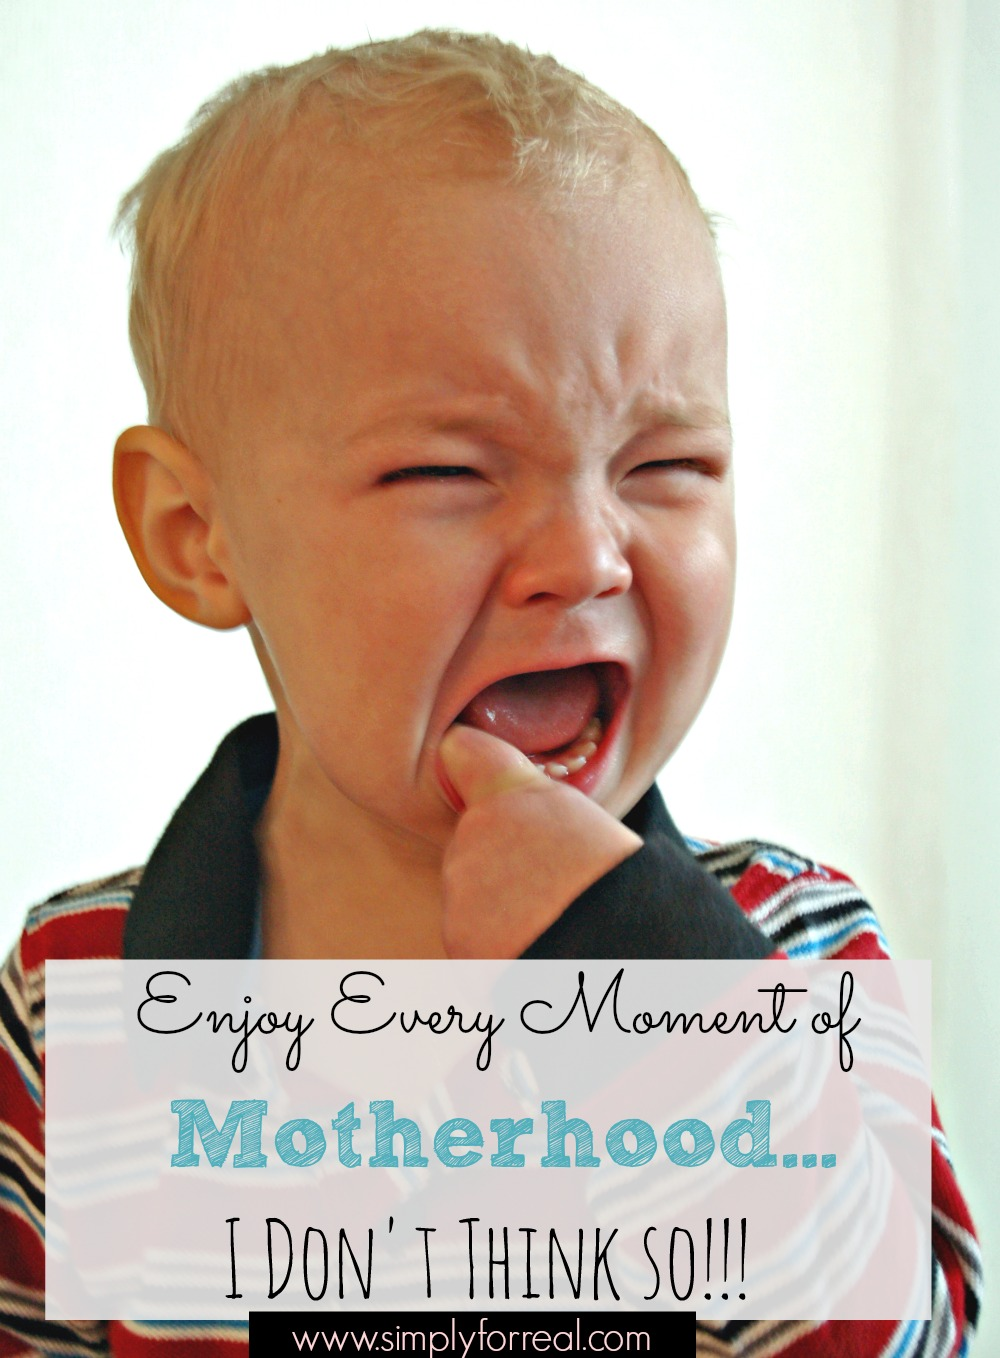 Have you ever had somebody tell you to enjoy every moment of motherhood because it passes so quickly? Is that even possible? Perhaps there is another way to look at it...a way that does not cause so much guilt...